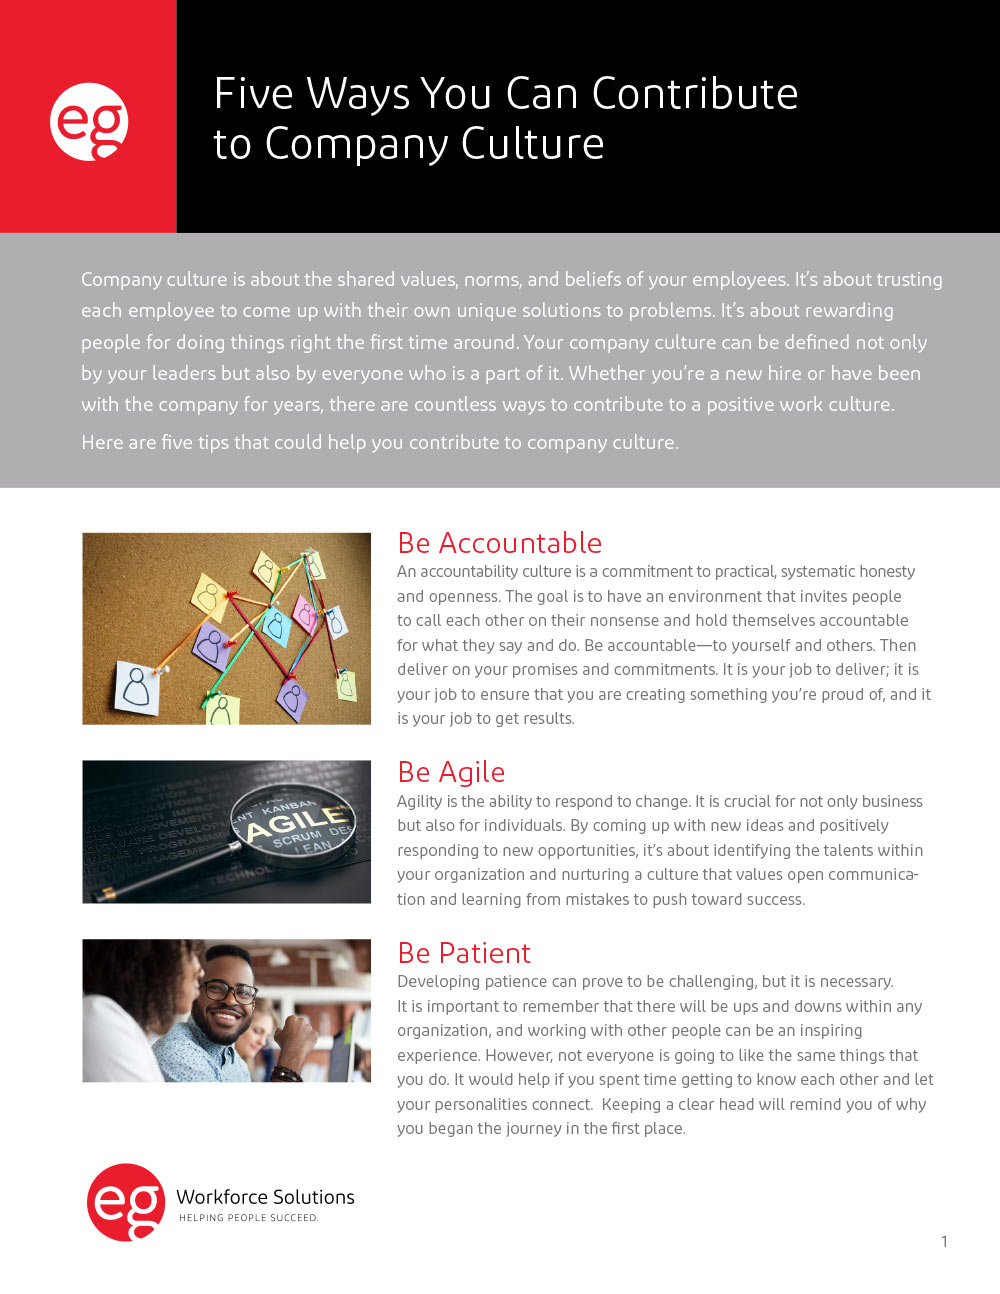 Five Ways You Can Contribute to Company Culture